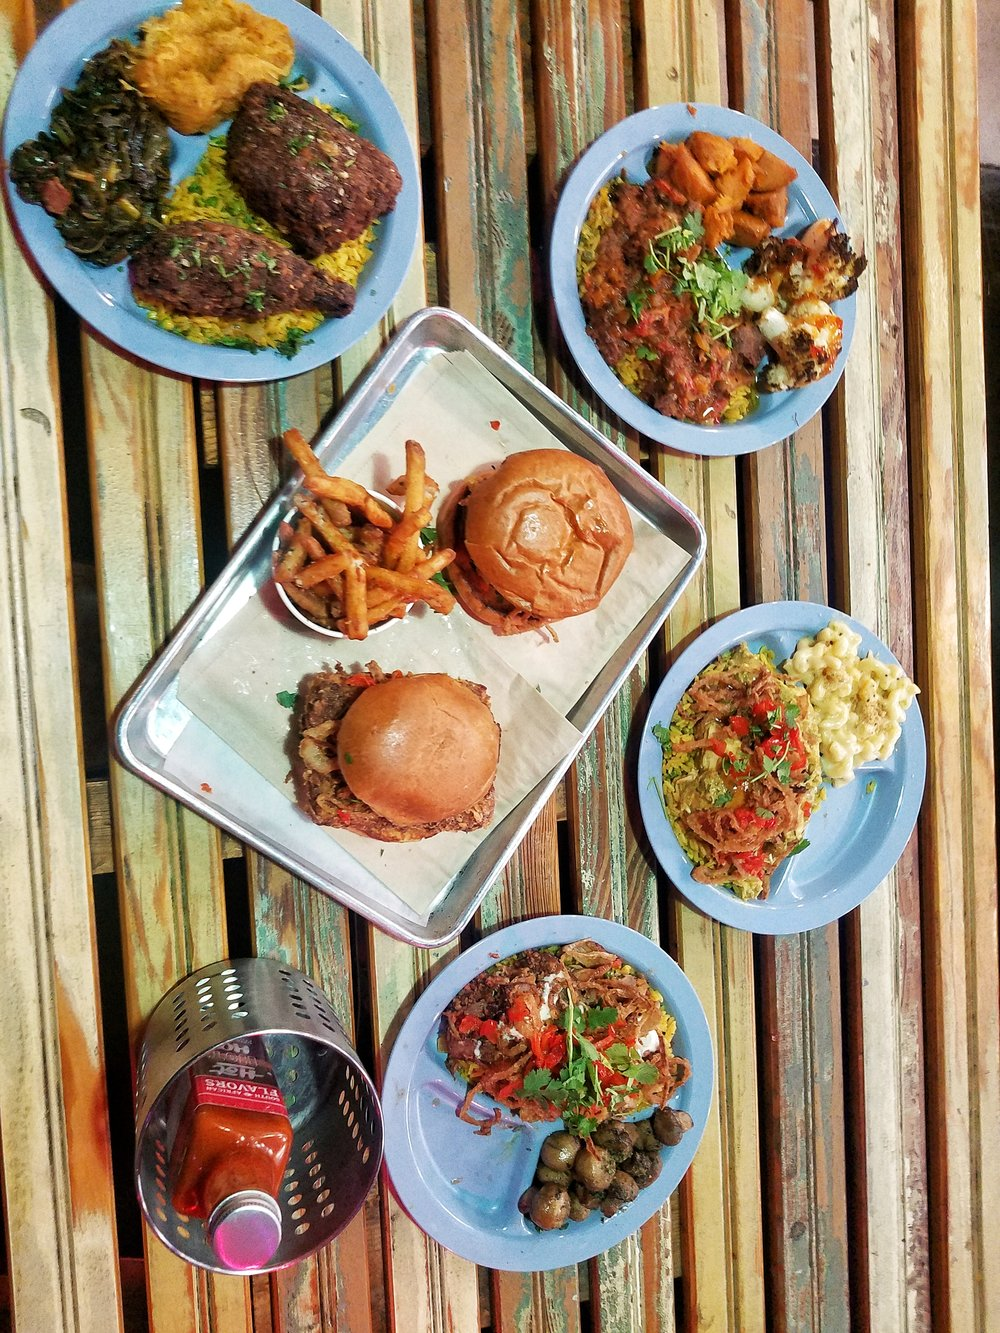 peli-peli-kitchen-variety-of-menu-items-south-african-houston